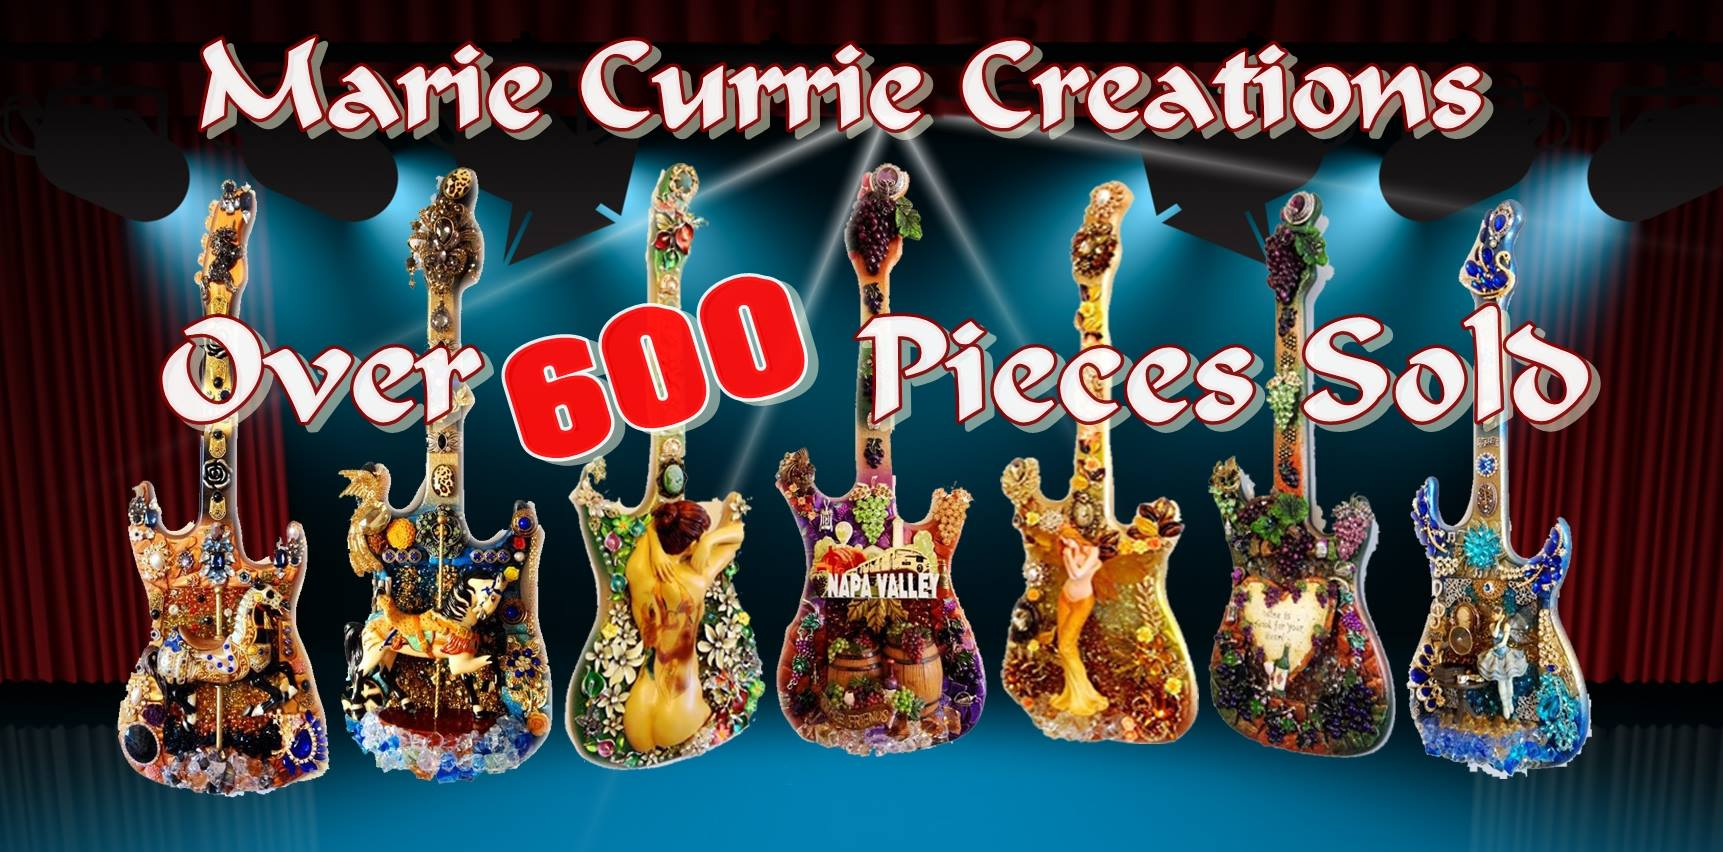 marie currie creations